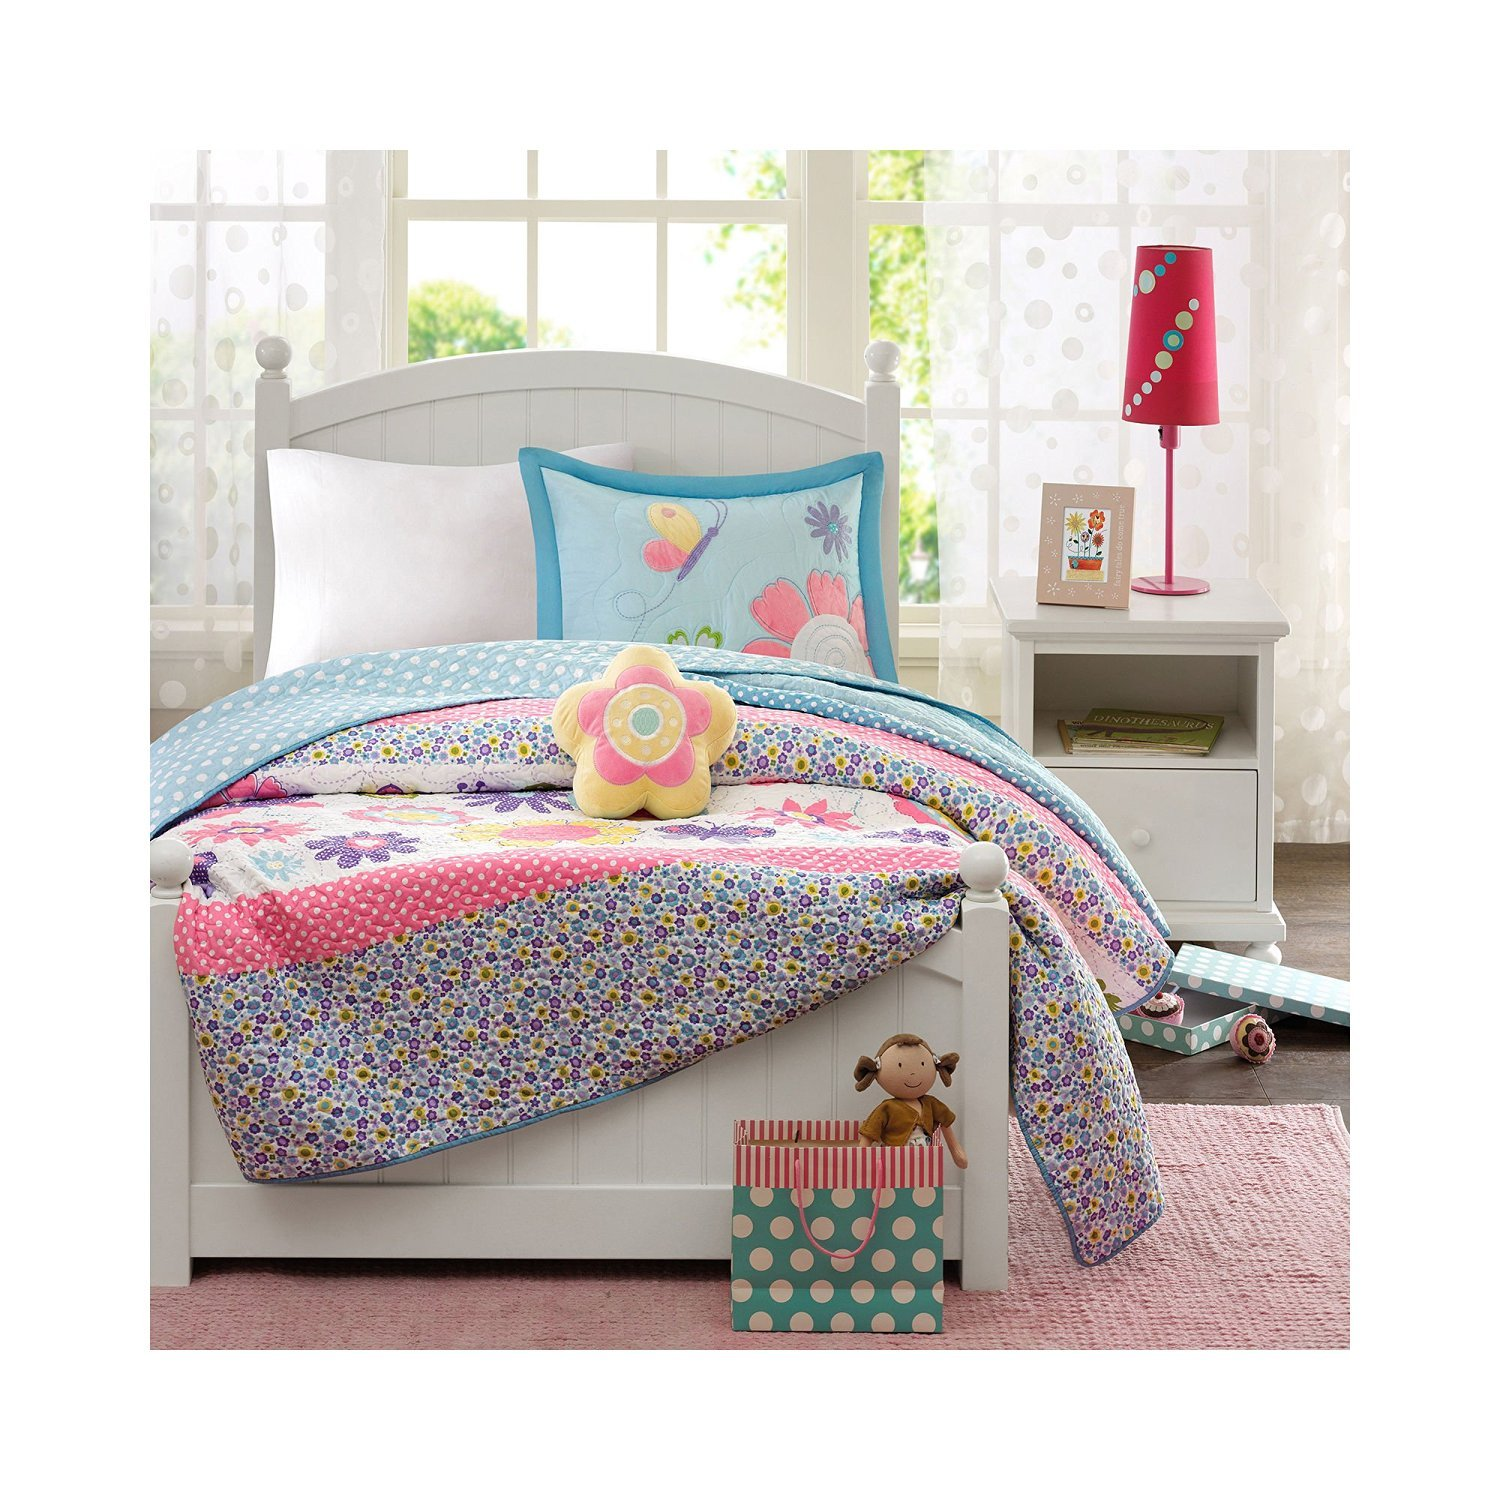 Mizone Kids Crazy Daisy 4 Piece Coverlet Set, Multicolor, Full/Queen